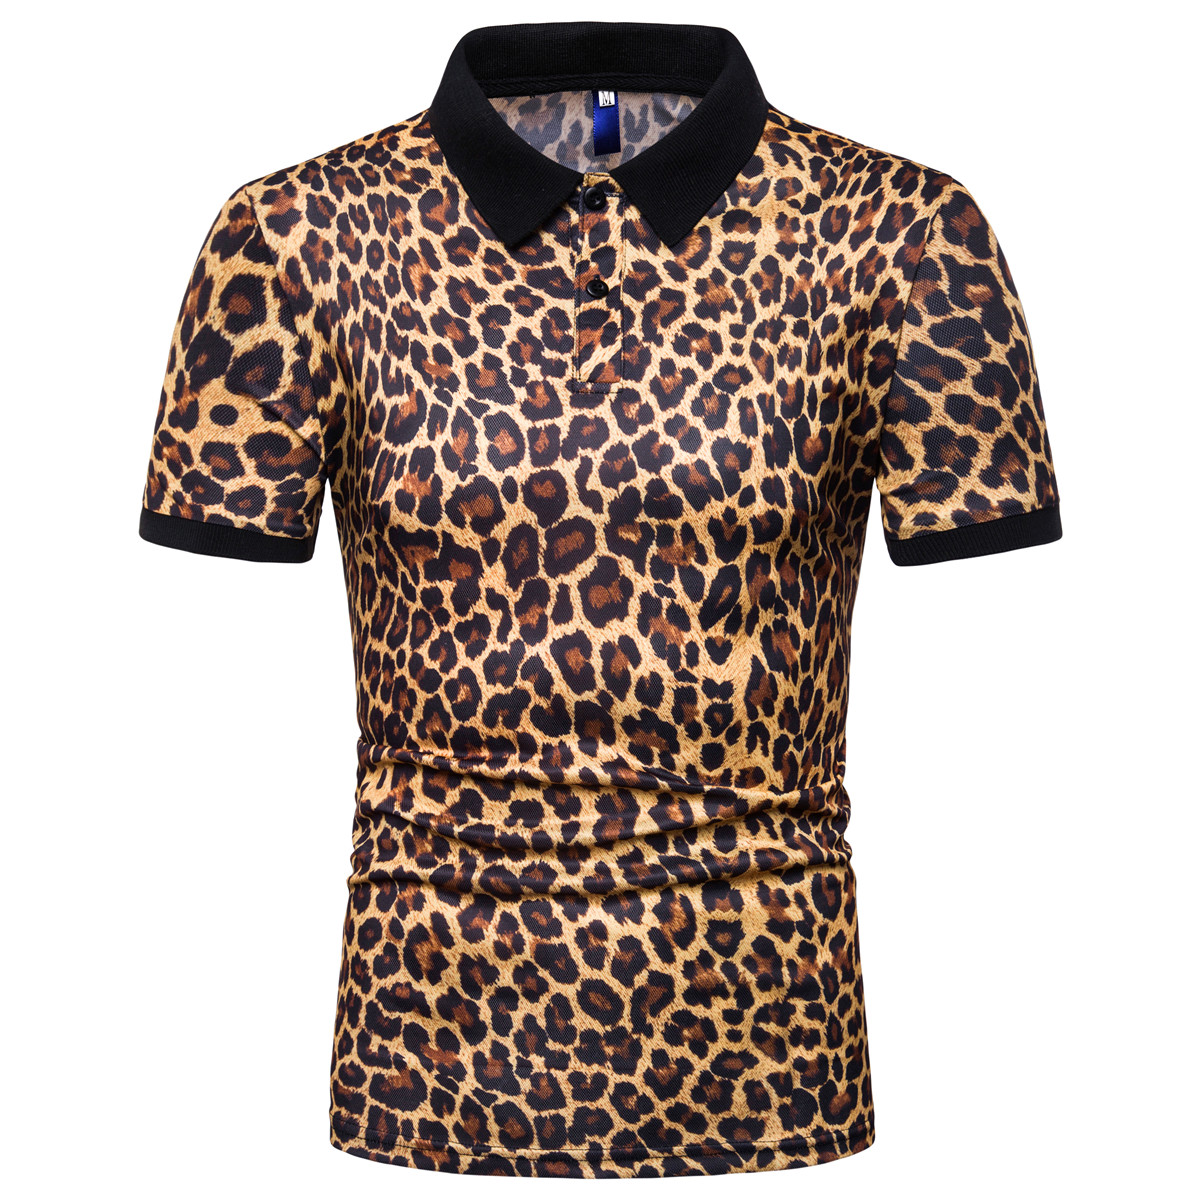 Miicoopie Mens Short Sleeve   Polo   Shirts Fashion Leopard Print Casual Brand   Polo   Shirts